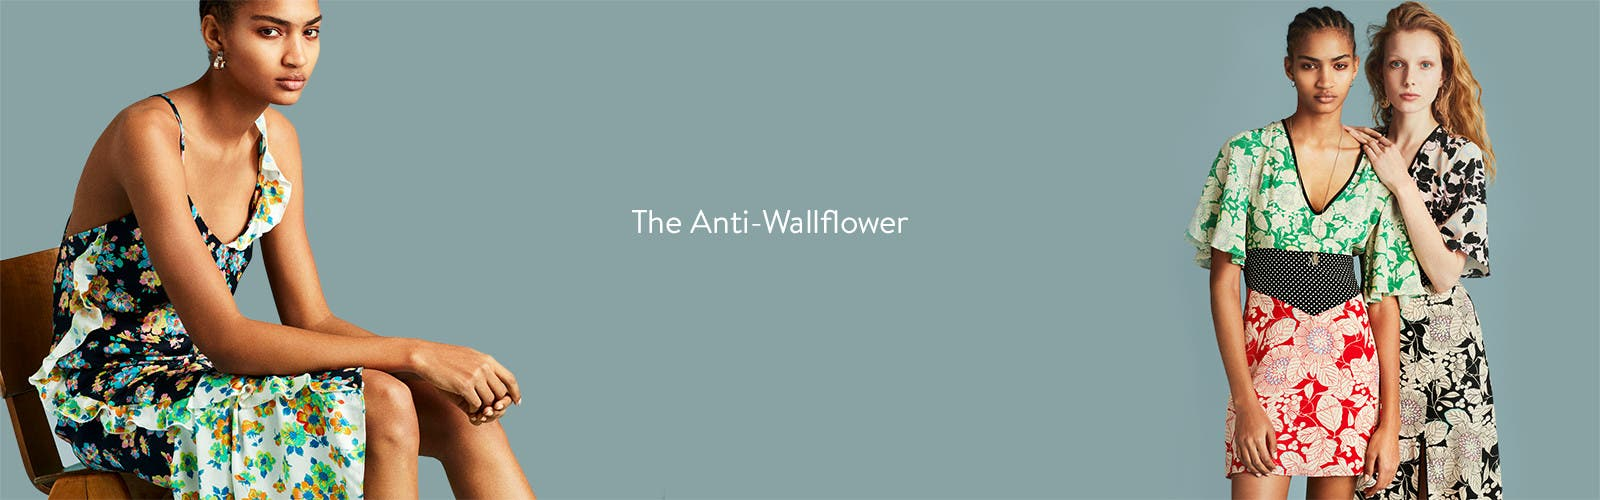 The anti-wallflower.